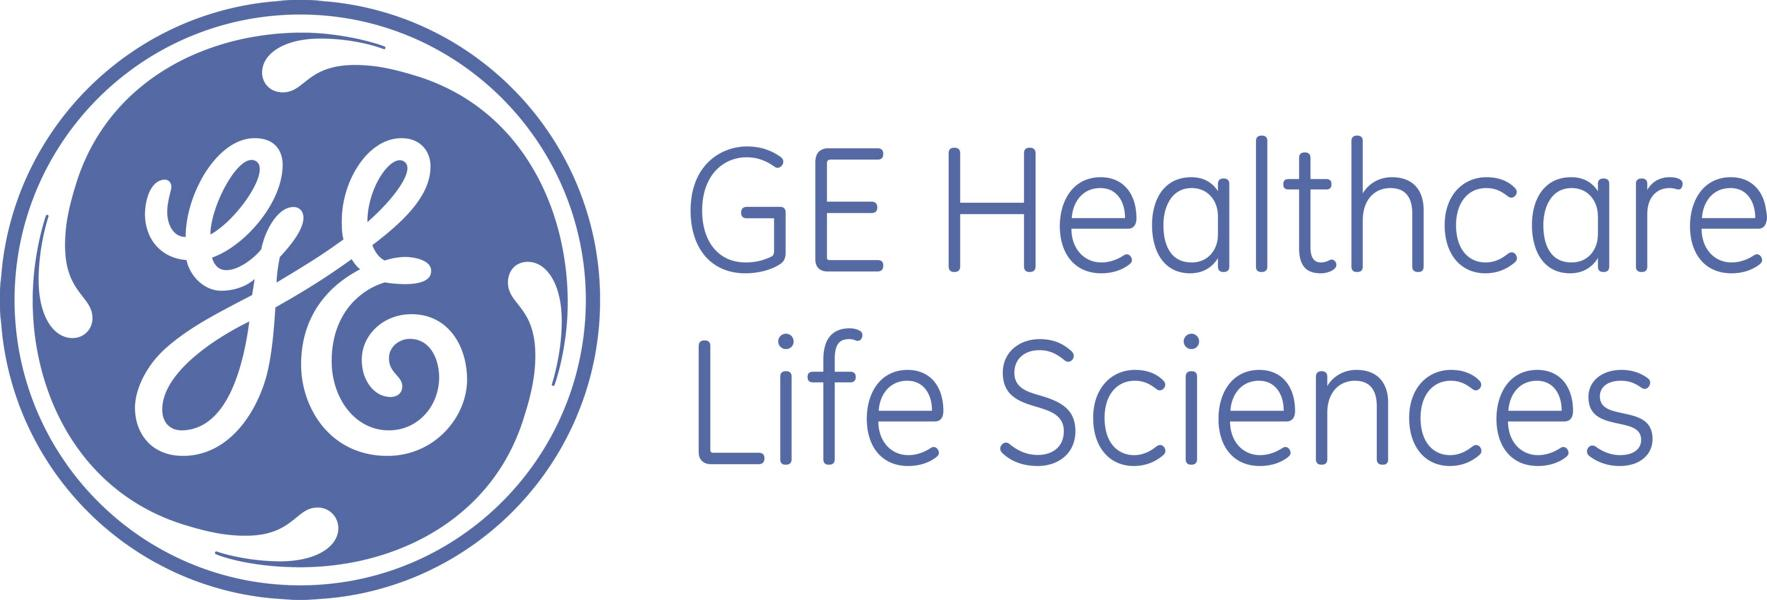 GE HEalthcare Life Science